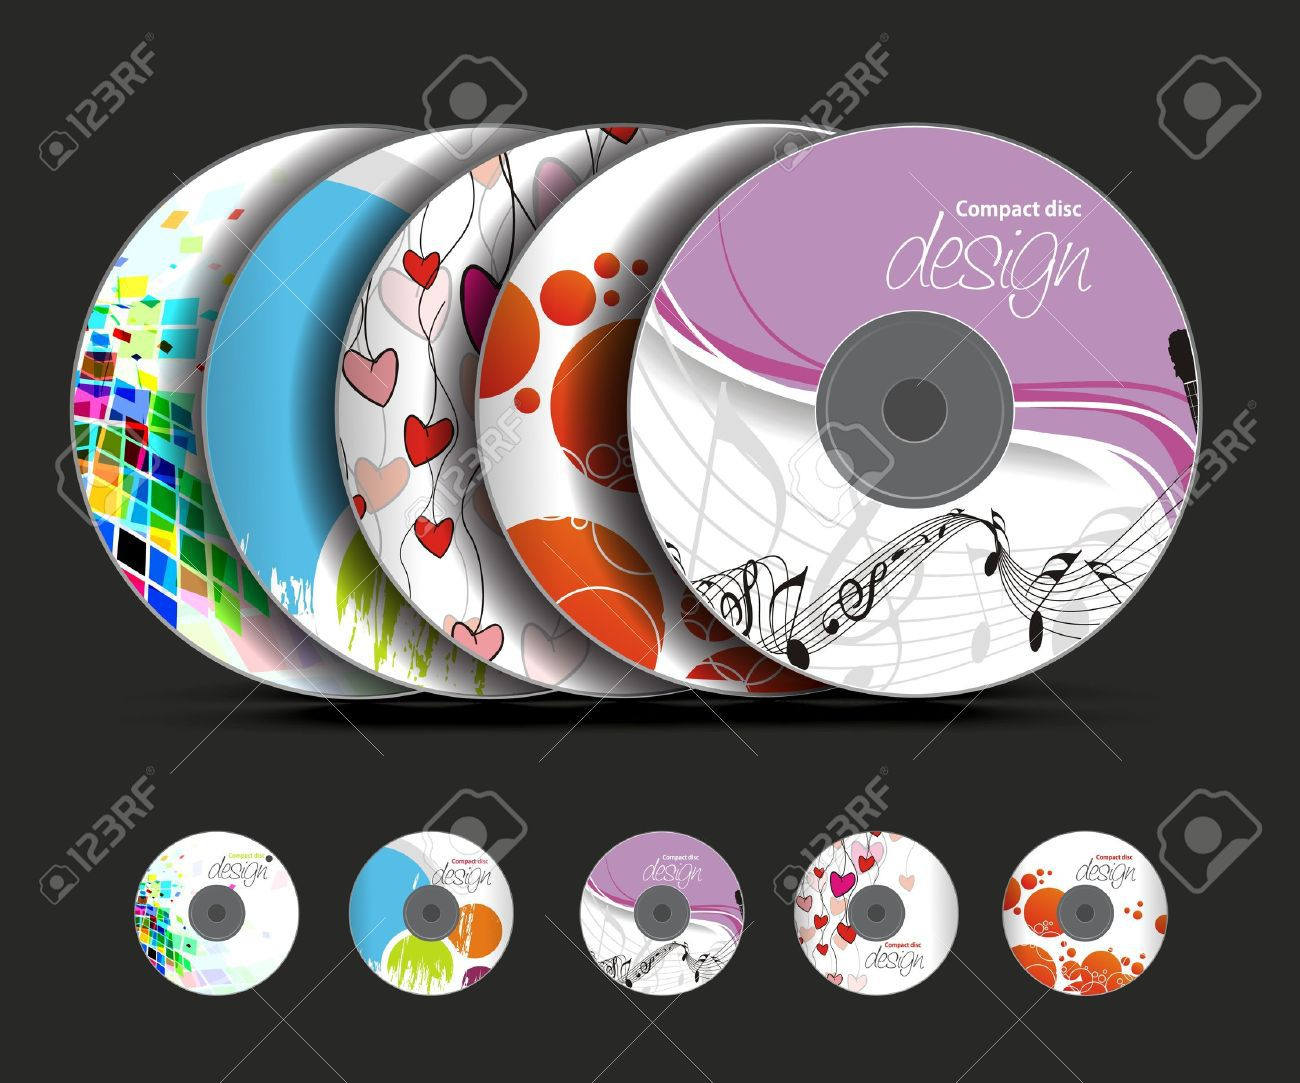 001 Unforgettable Vector Cd Cover Design Template Free Inspiration Full